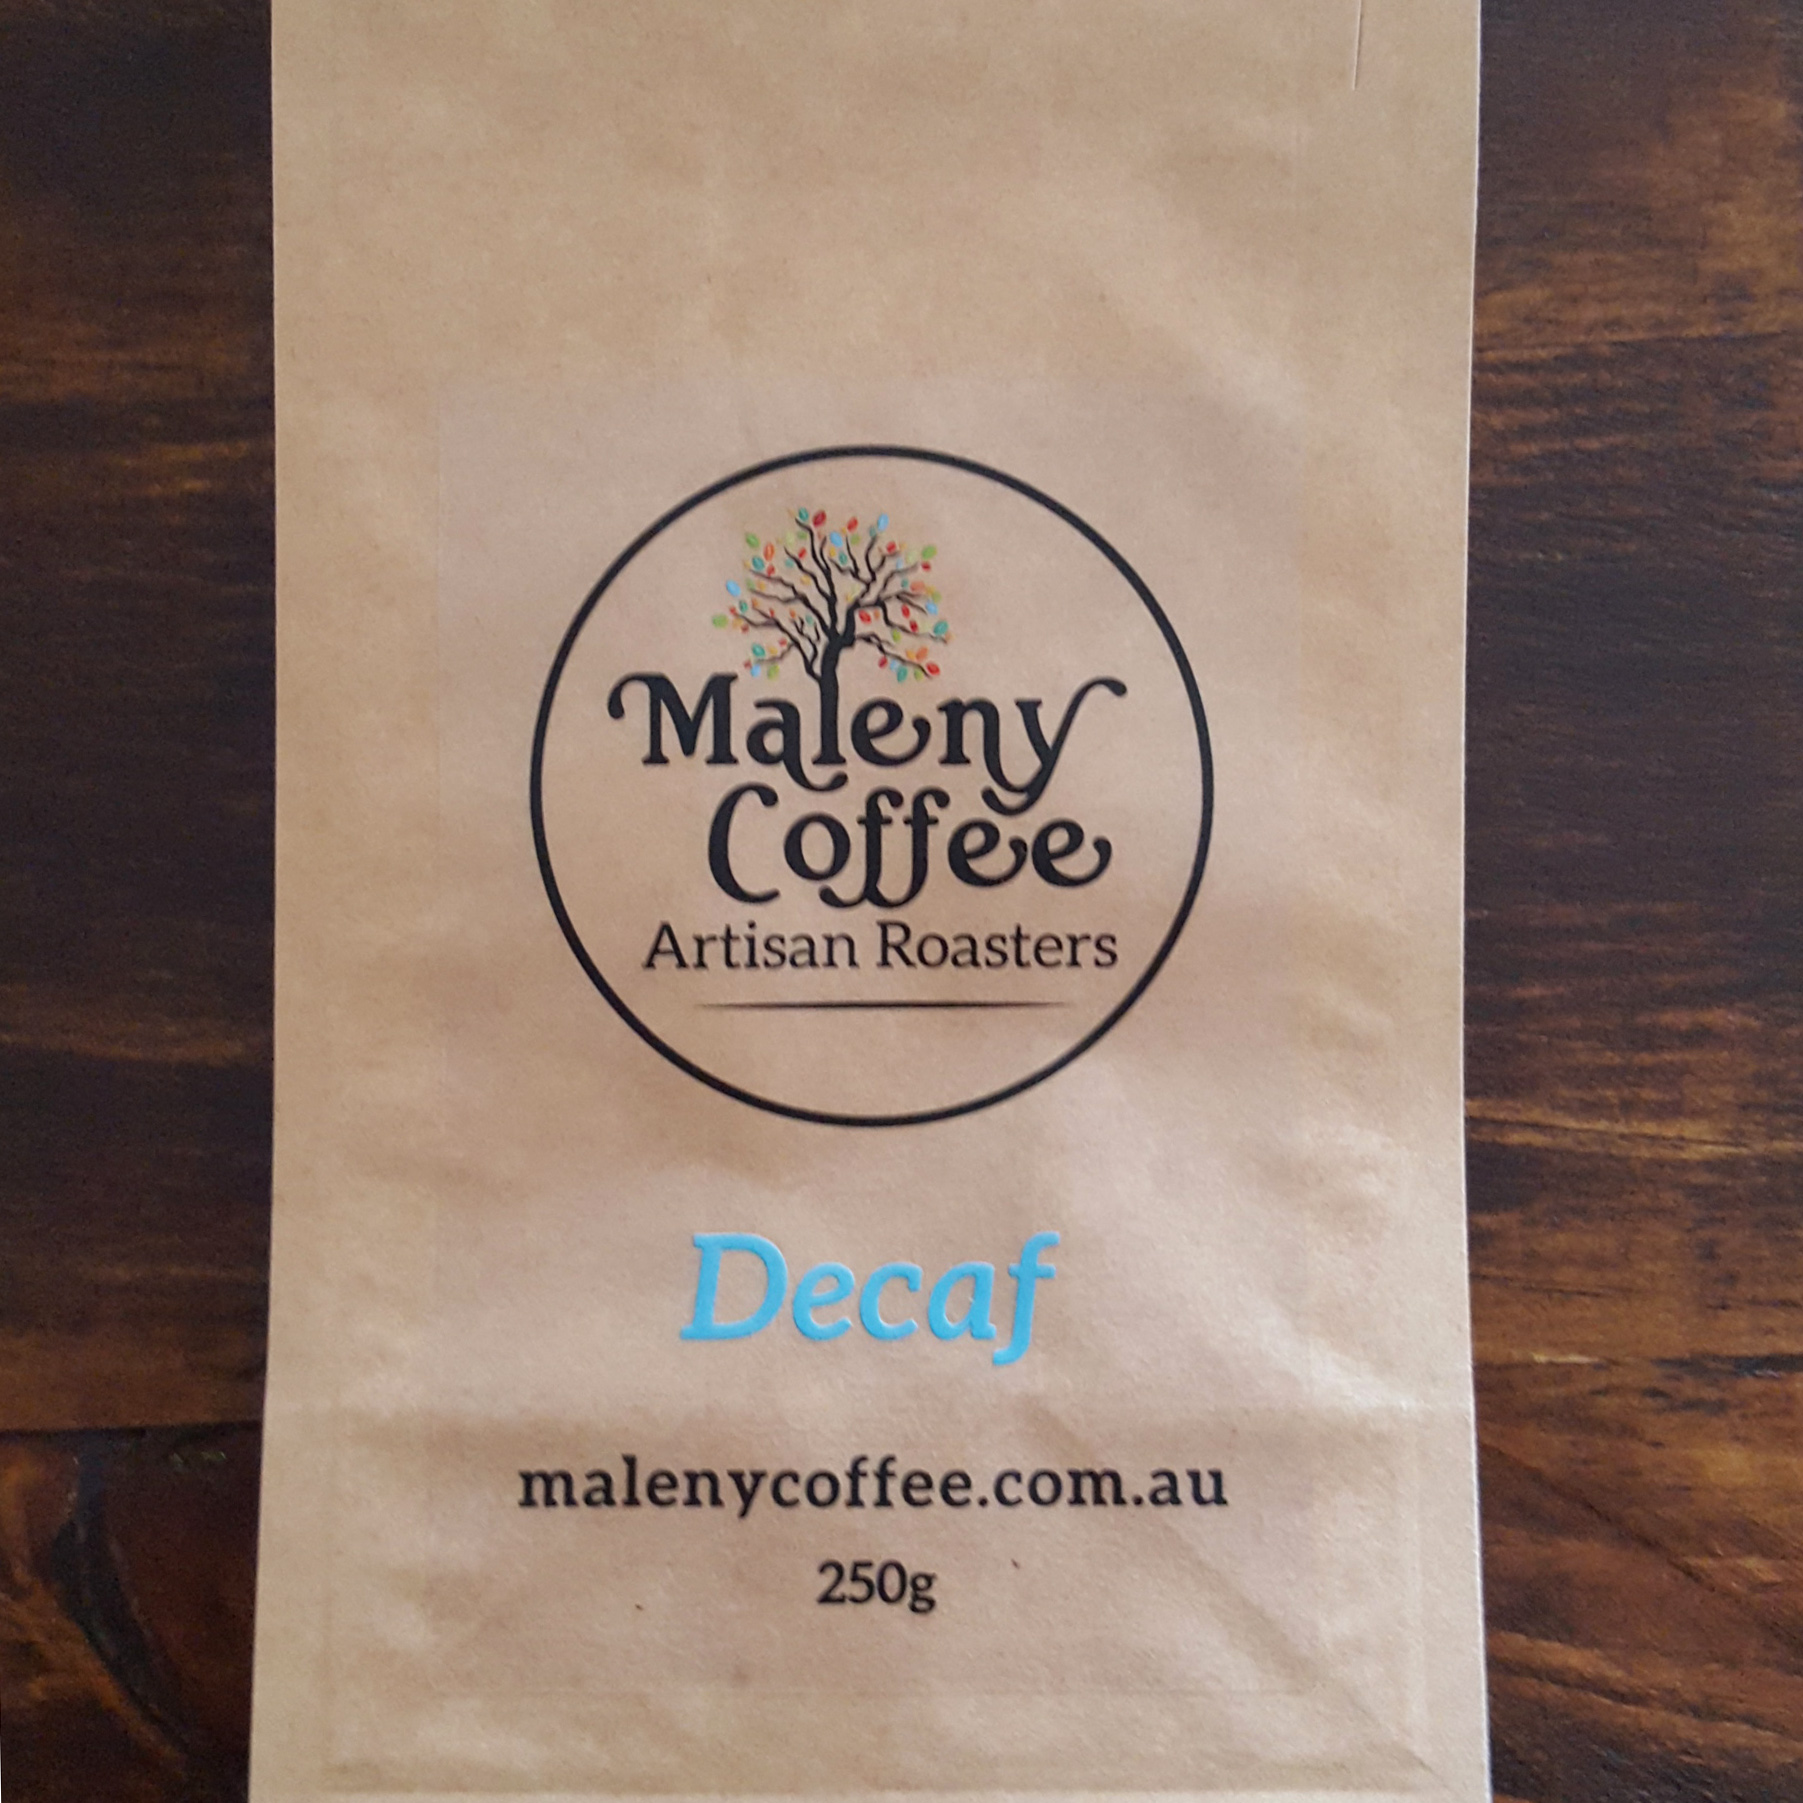 Maleny Coffee Decaf